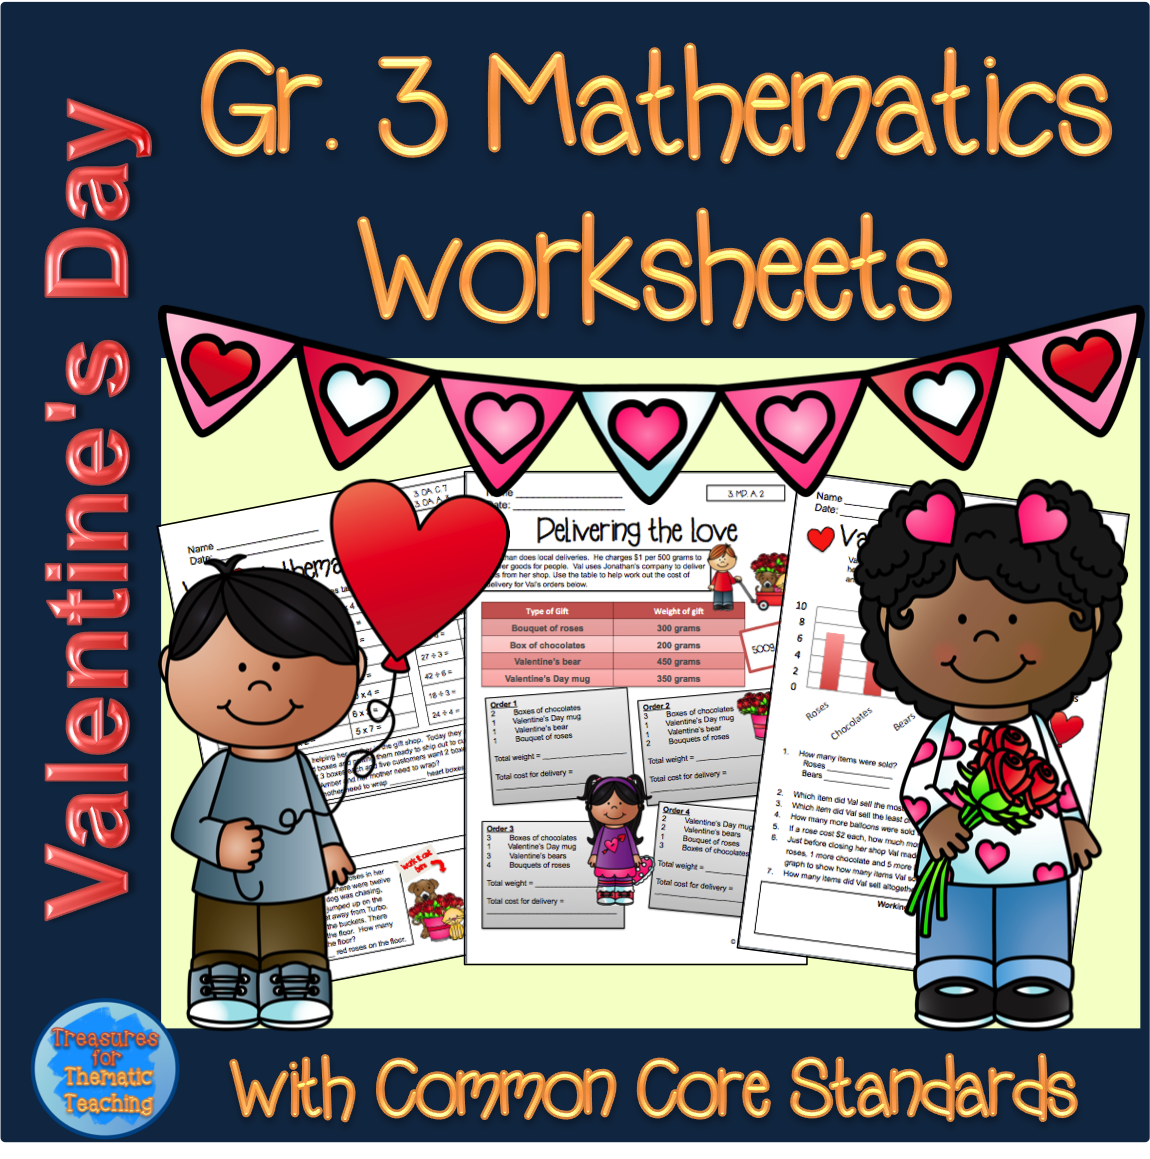 Valentine S Day Themed Mathematics Worksheets For Grade 3